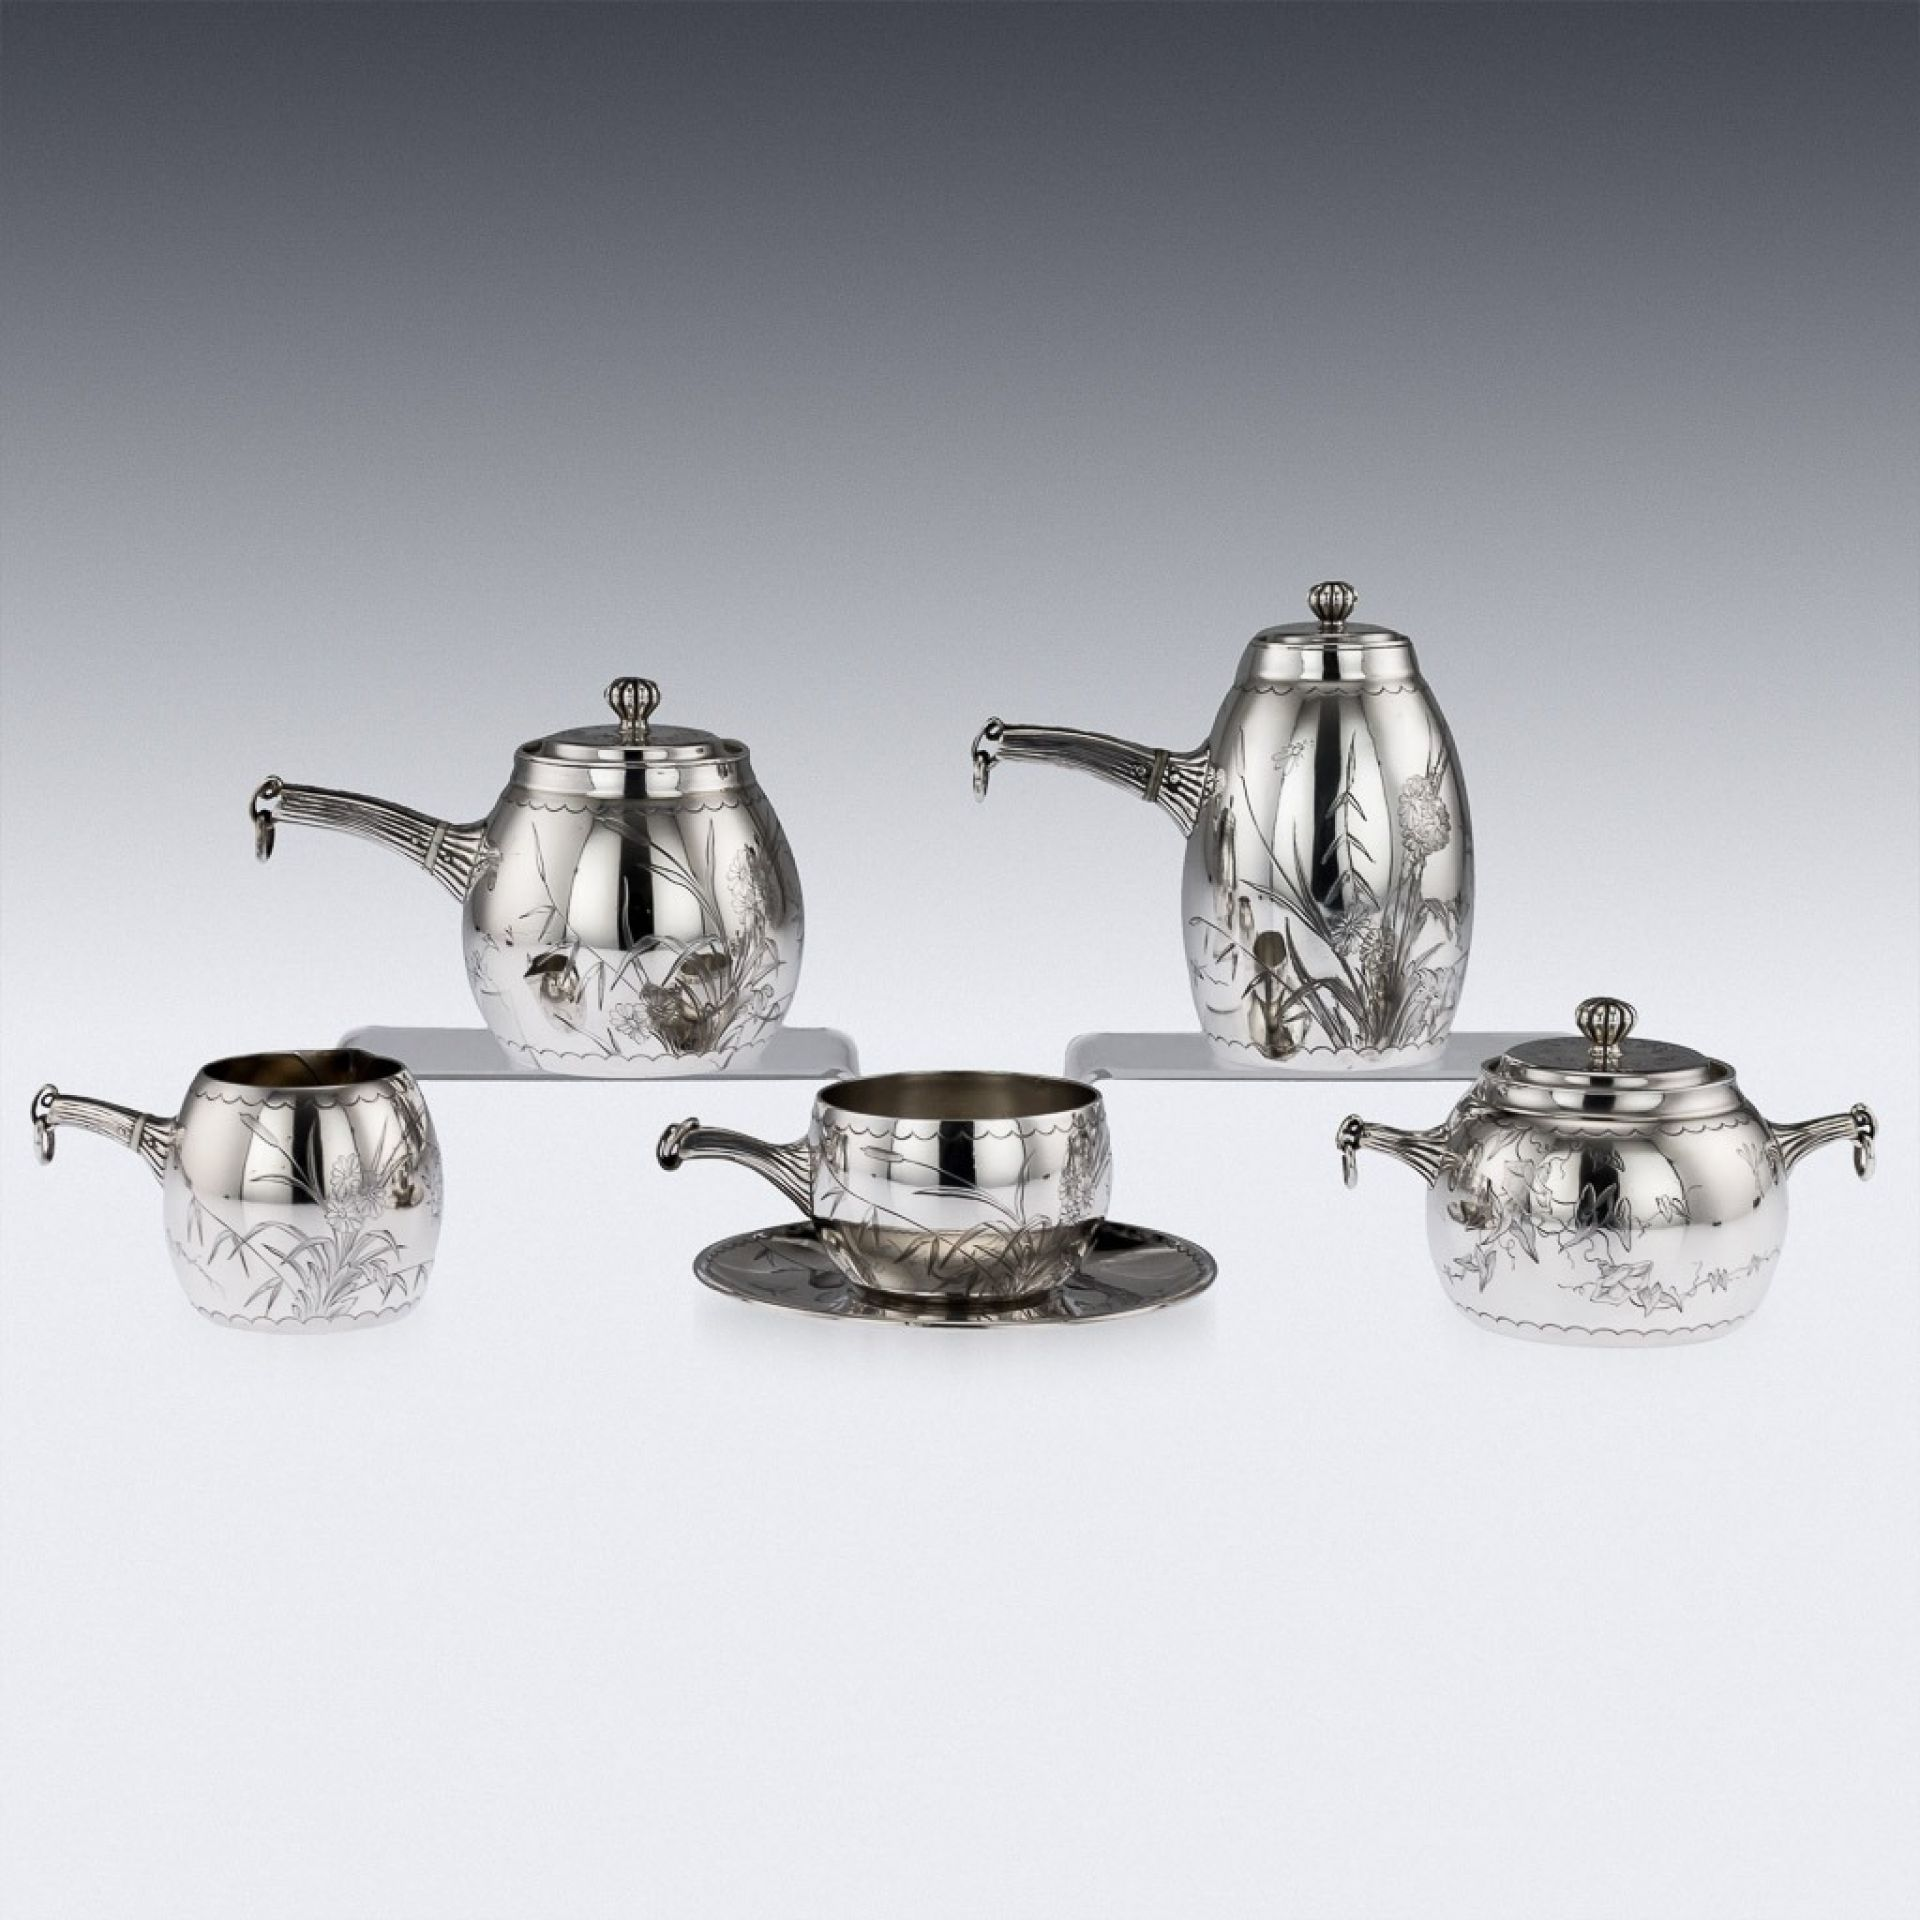 ANTIQUE 19thC FRENCH AESTHETIC MOVEMENT SOLID SILVER BACHELOR SET, MAYER c.1880